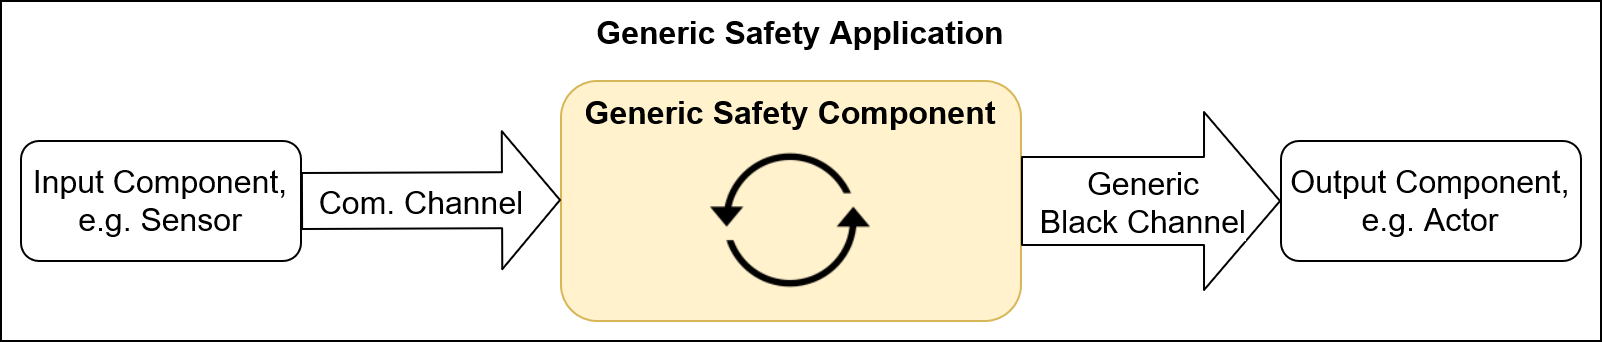 Integration of a generic software componente into a generic safety application